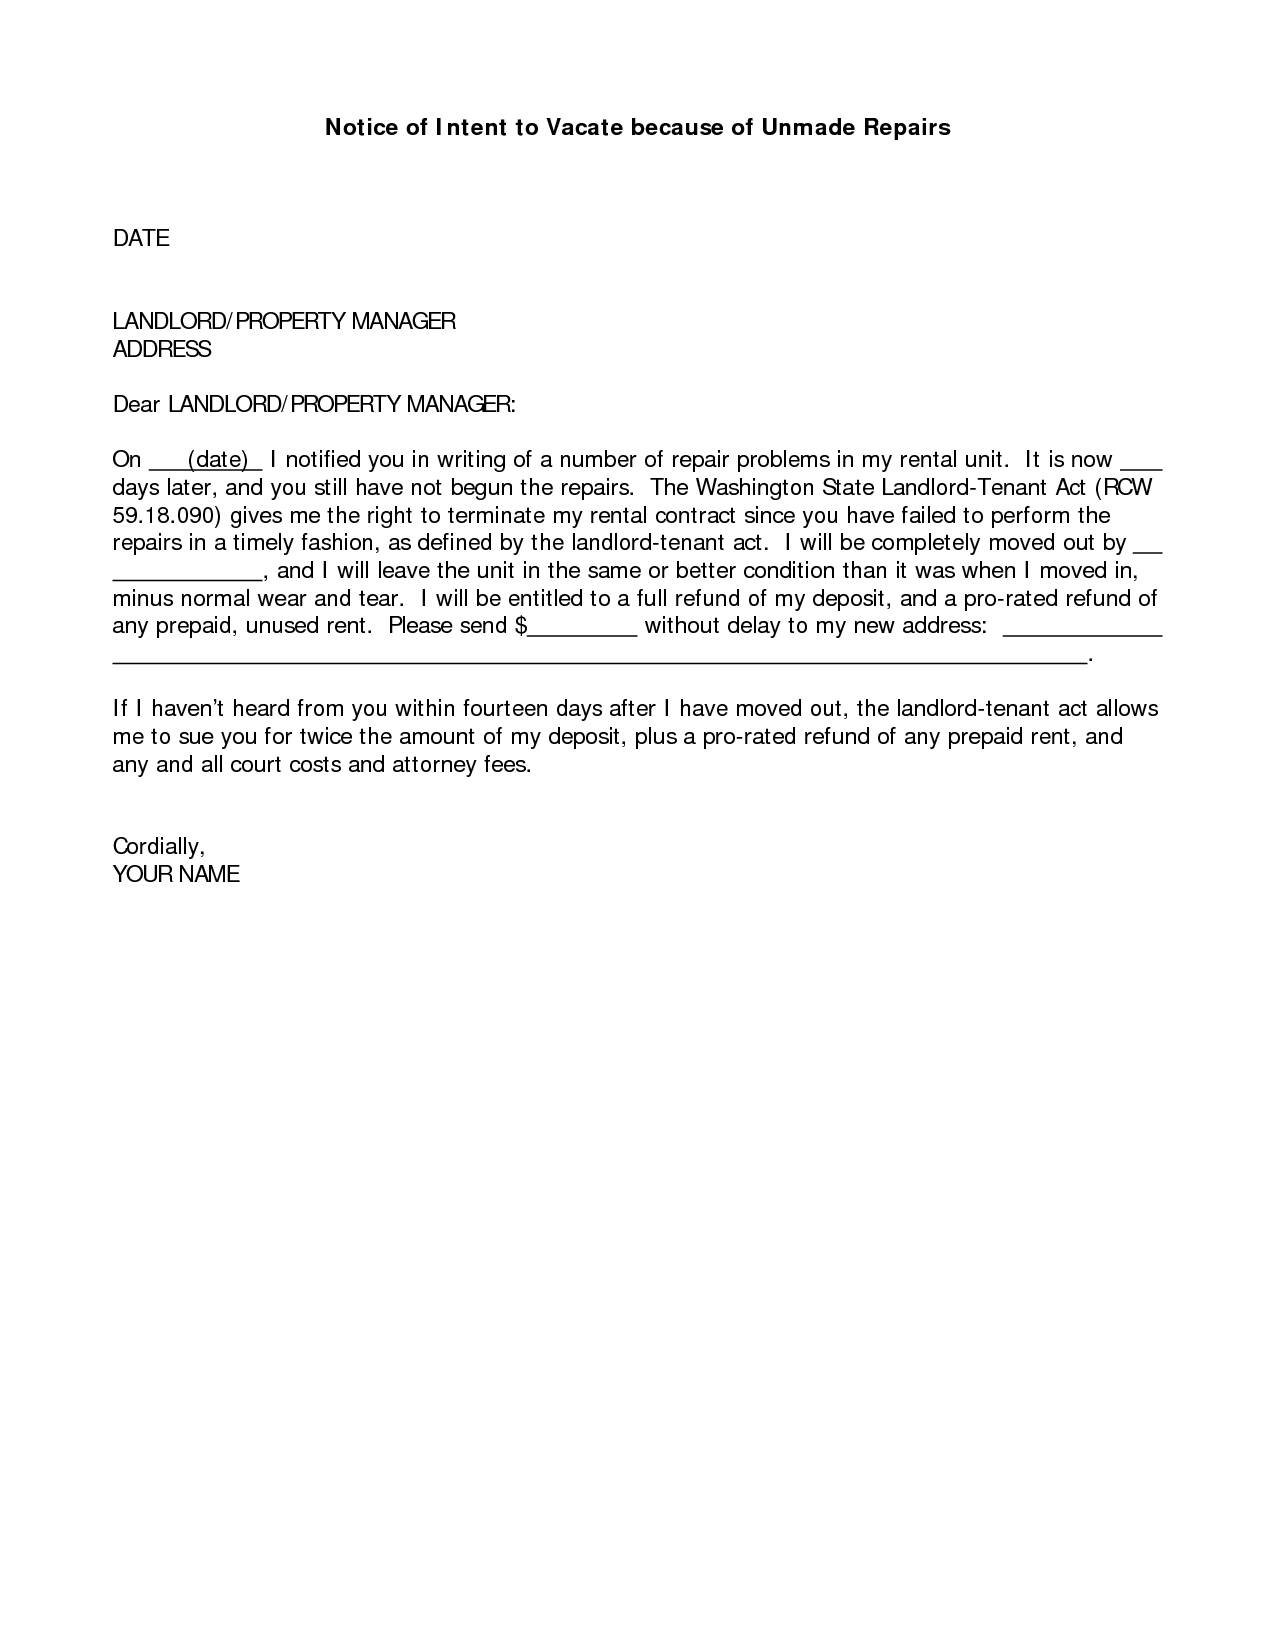 Notice Of Intent To Vacate Letter Template